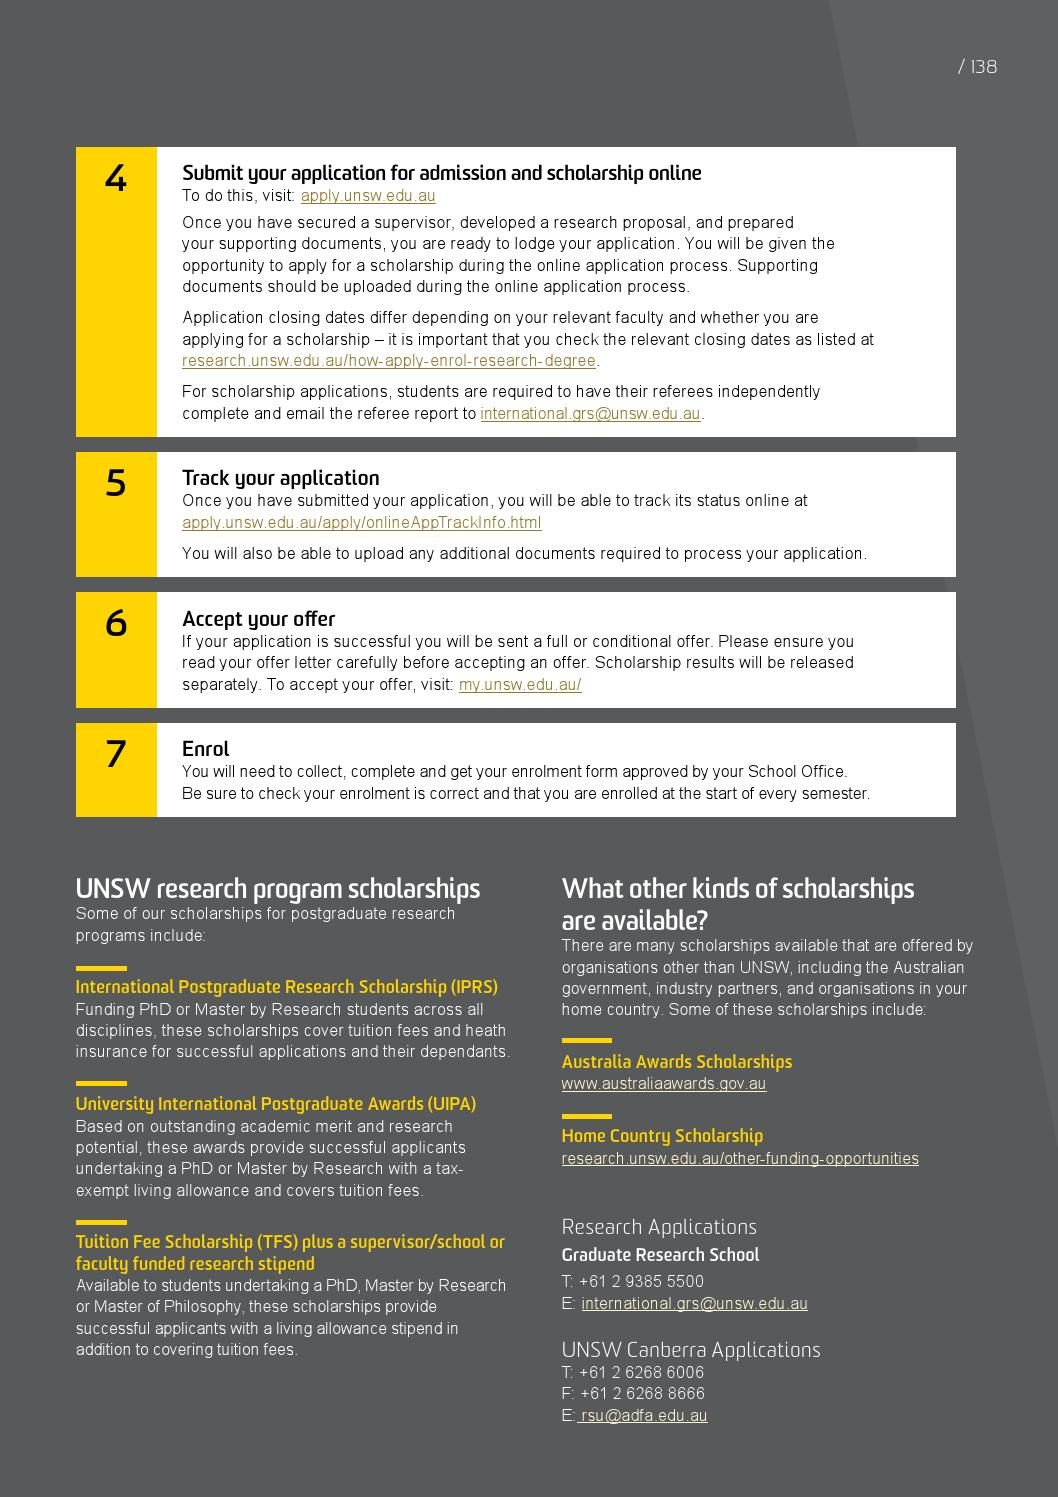 international student guide postgraduate by unsw international student guide 2016 postgraduate by unsw page 139 issuu